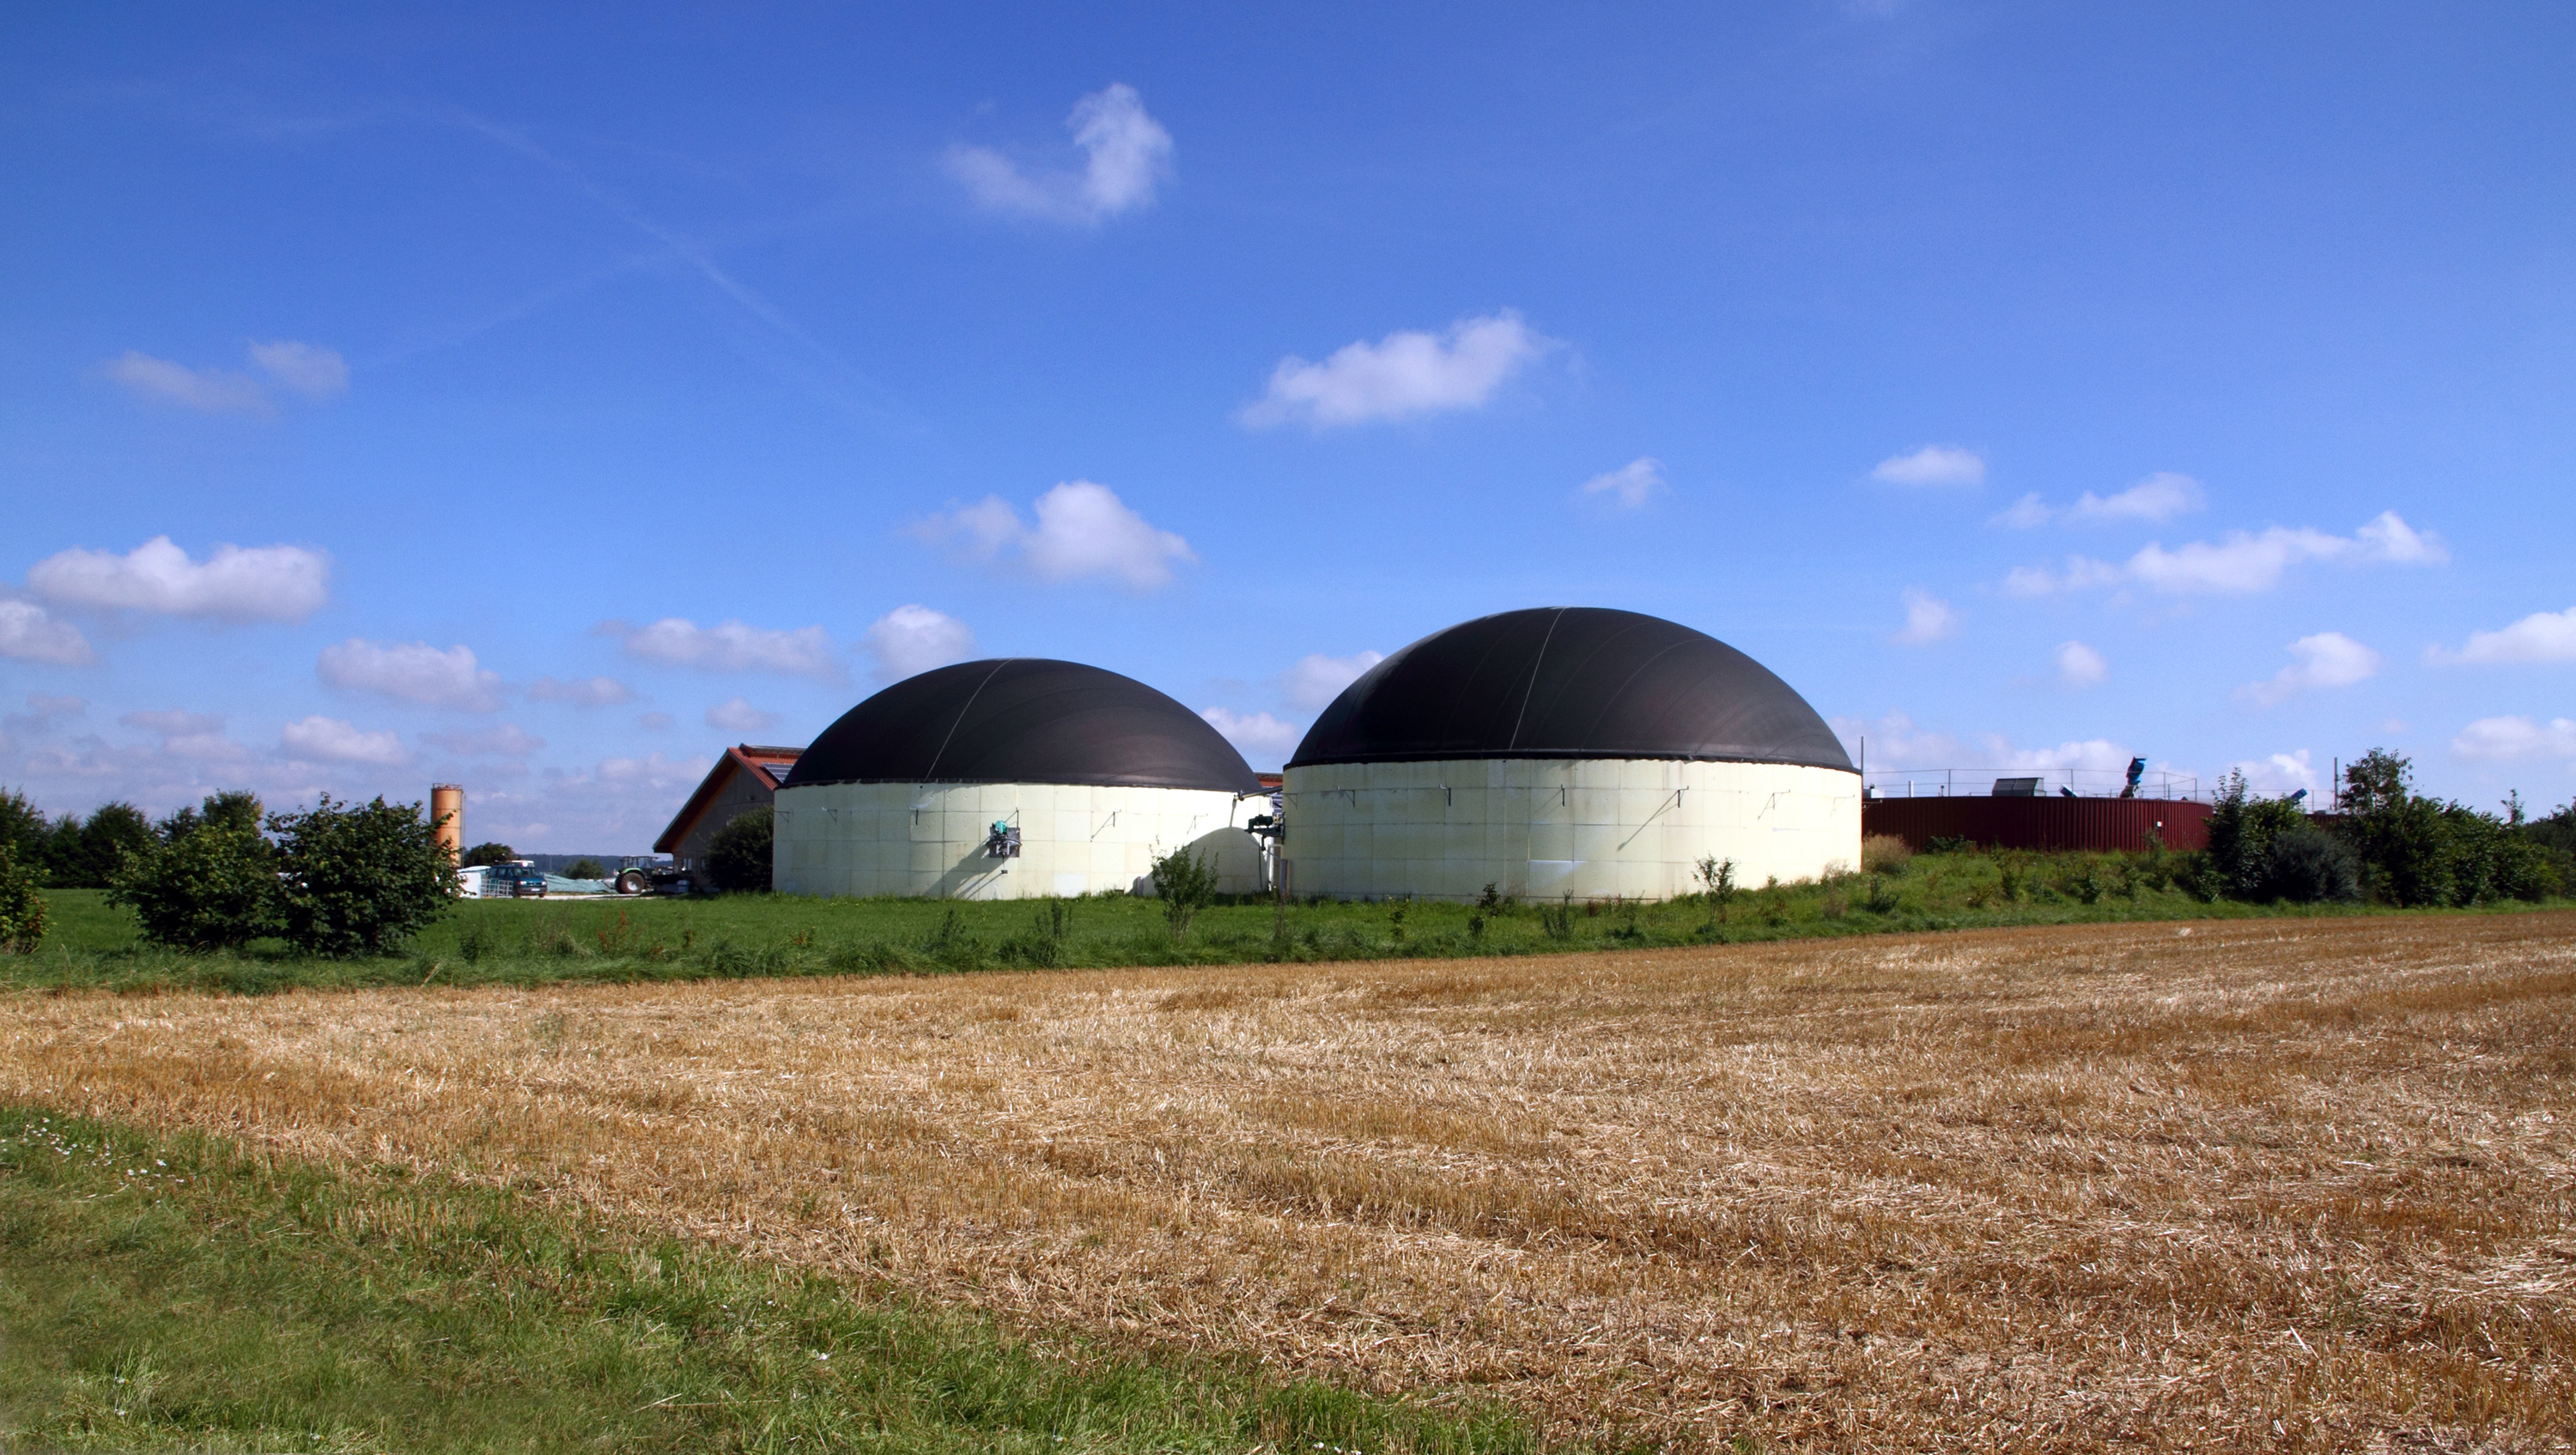 Biofuels and anaerobic digestion plants